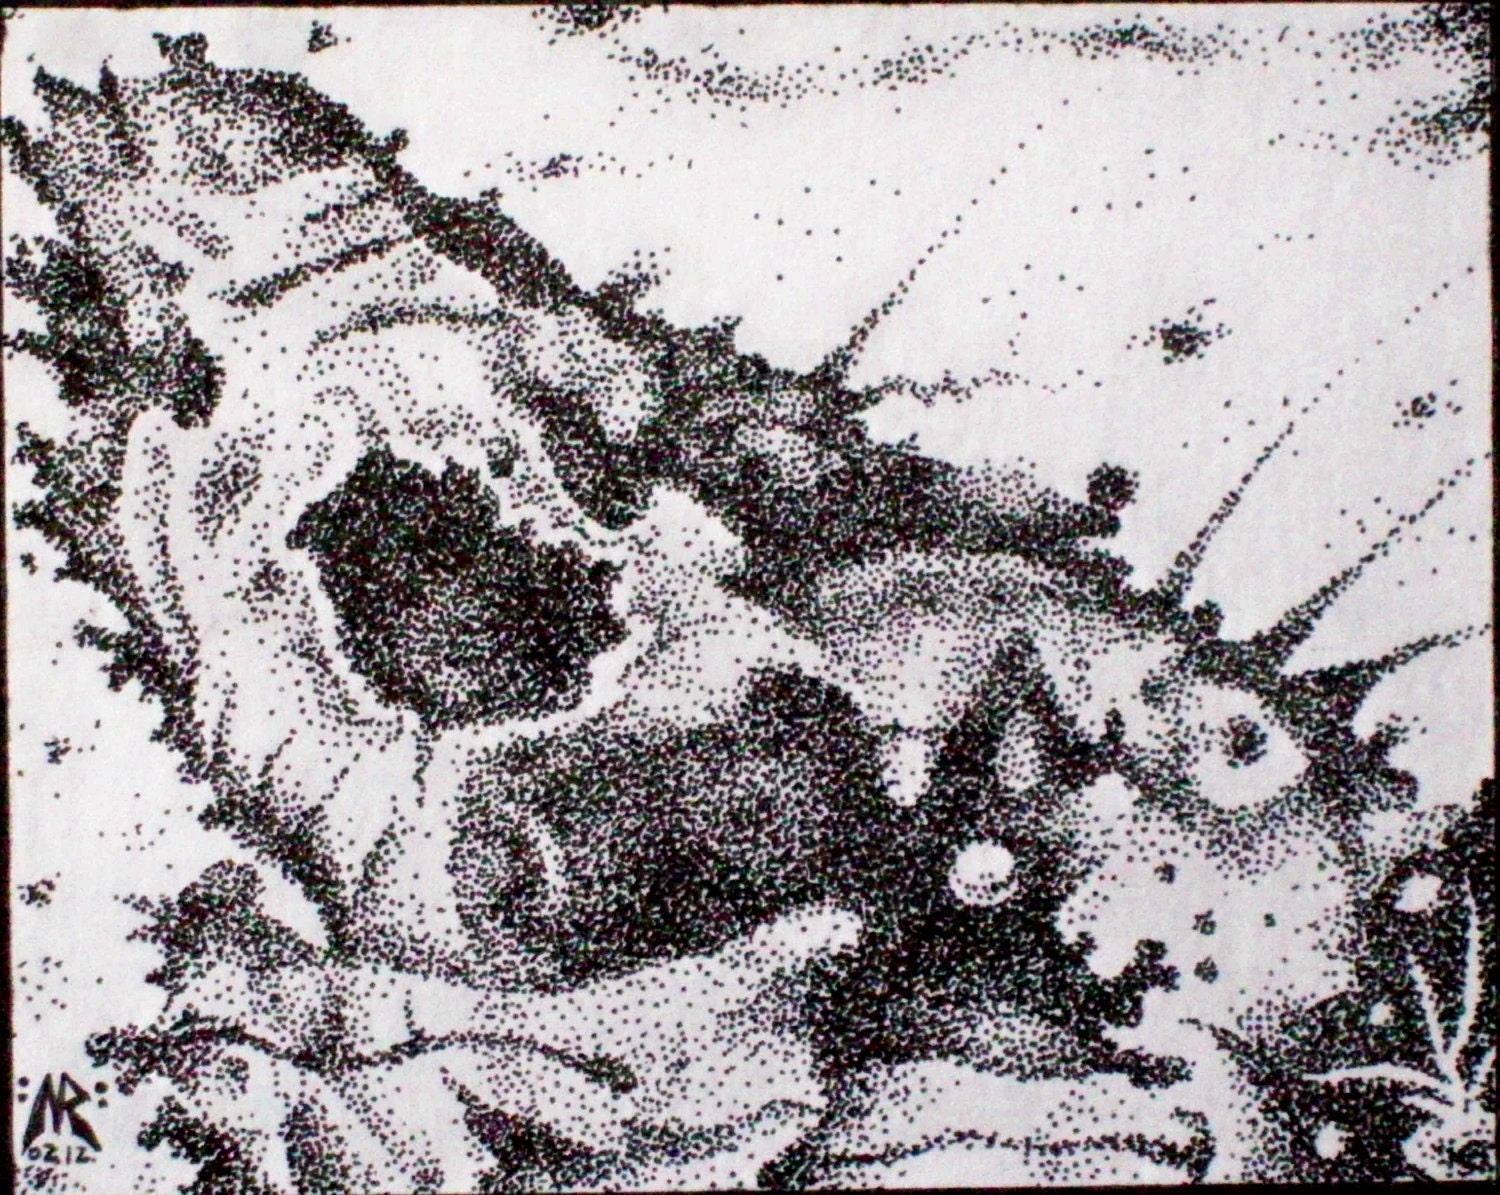 Some Sort of Creature (original stippled ink drawing) - NRarts